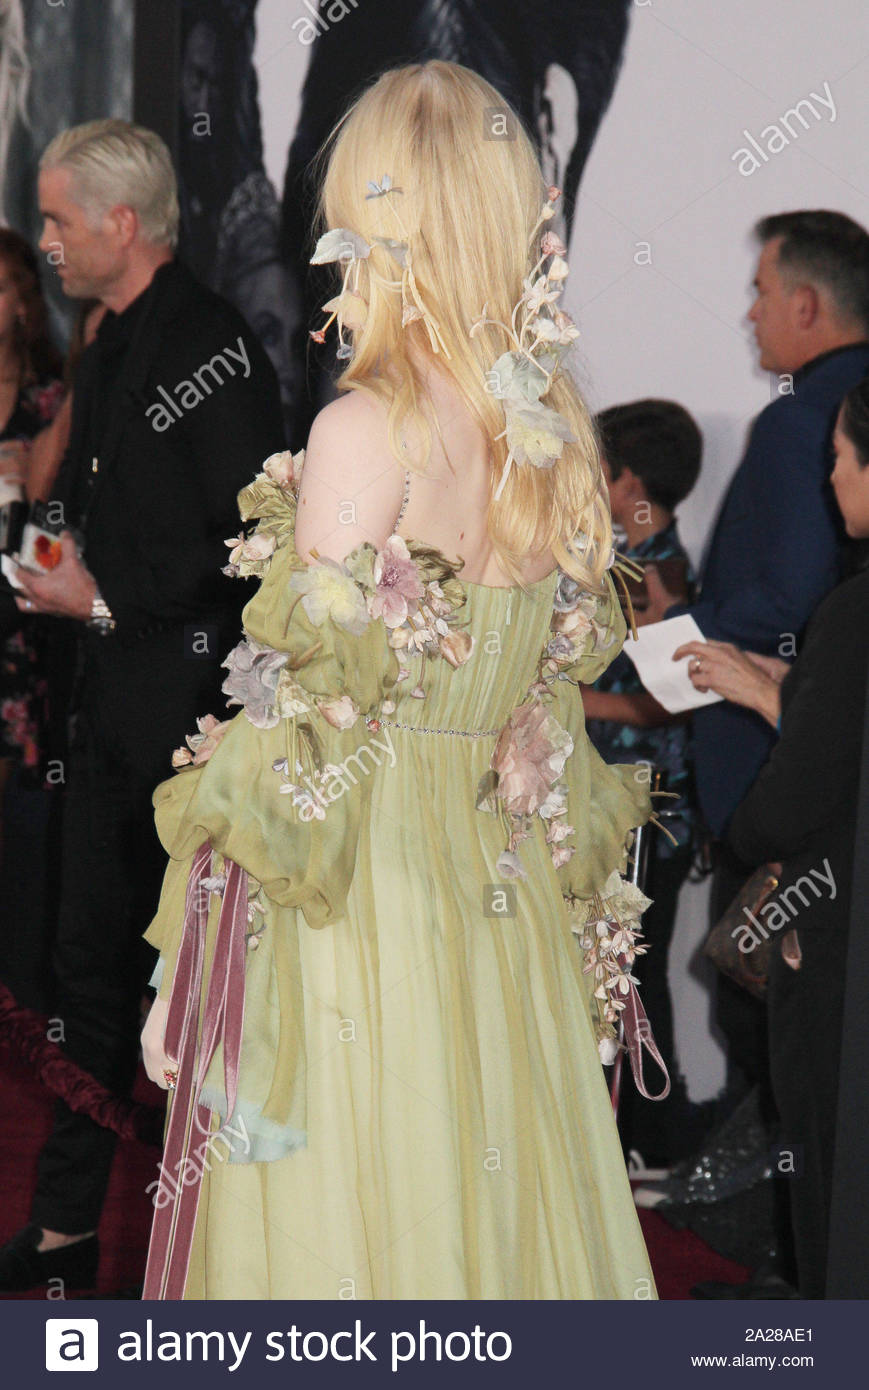 elle-fanning-09302019-the-world-premiere-of-maleficent-mistress-of-evil-held-at-the-el-capitantheatre-in-los-angeles-ca-photo-cronoshollywood-news-2A28AE1